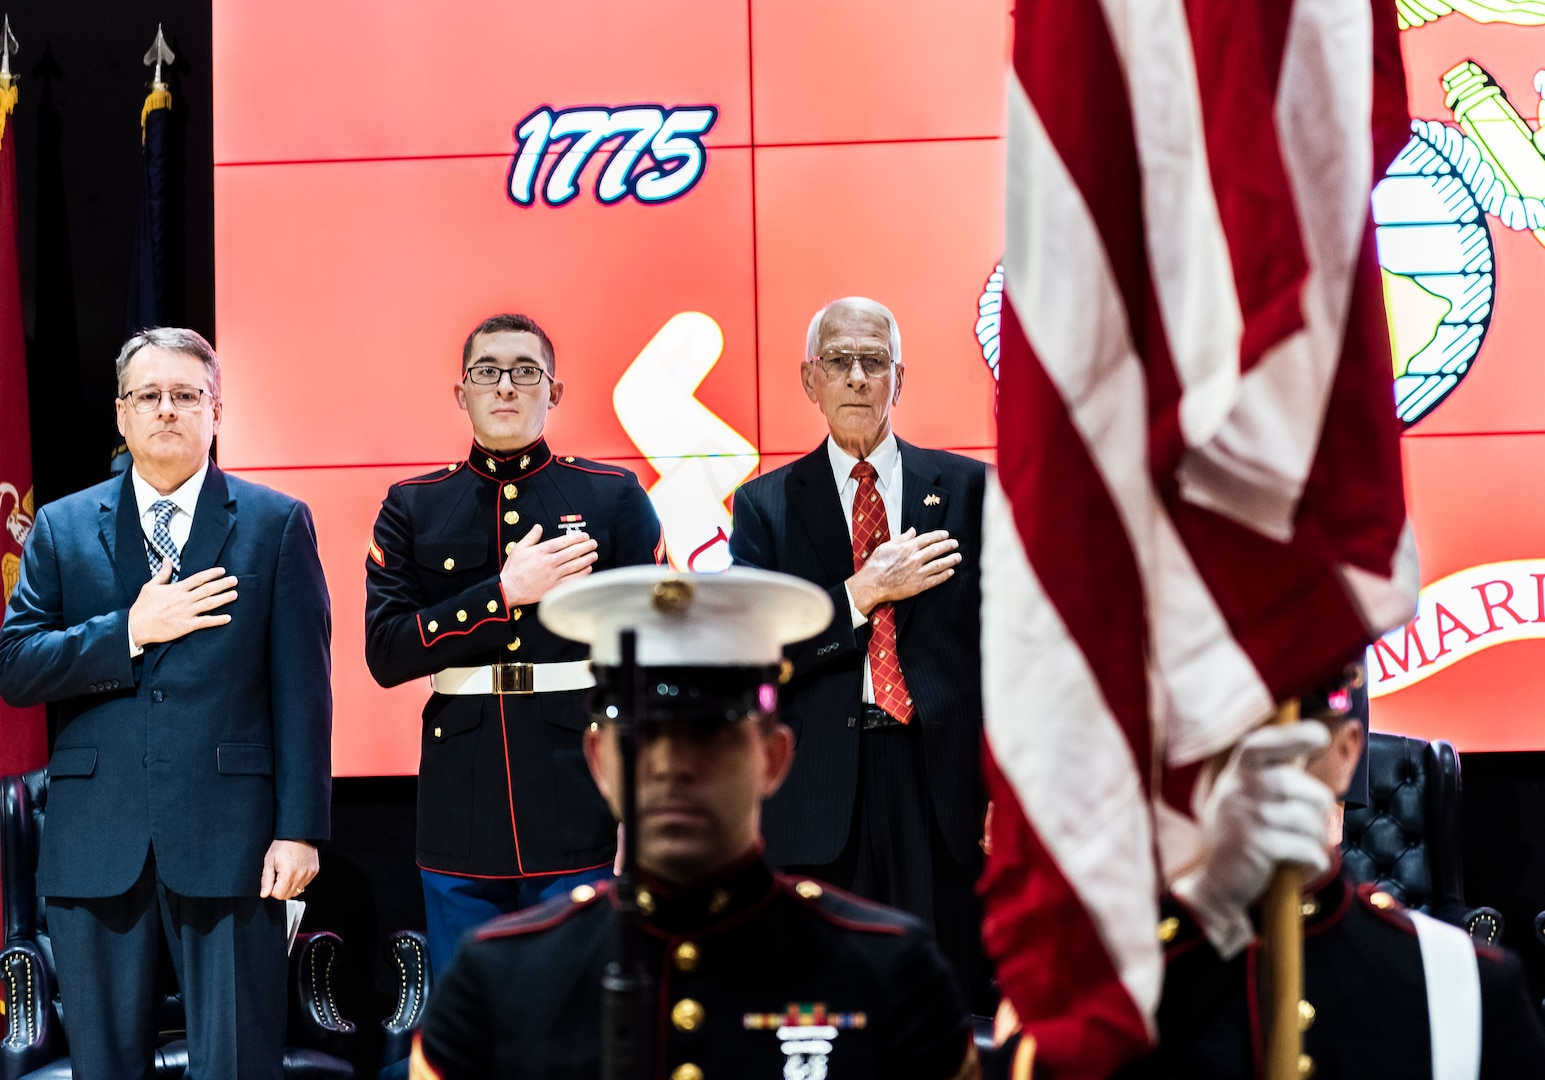 Three men on stage have right hand over heart as Marines present the colors during birthday celebration